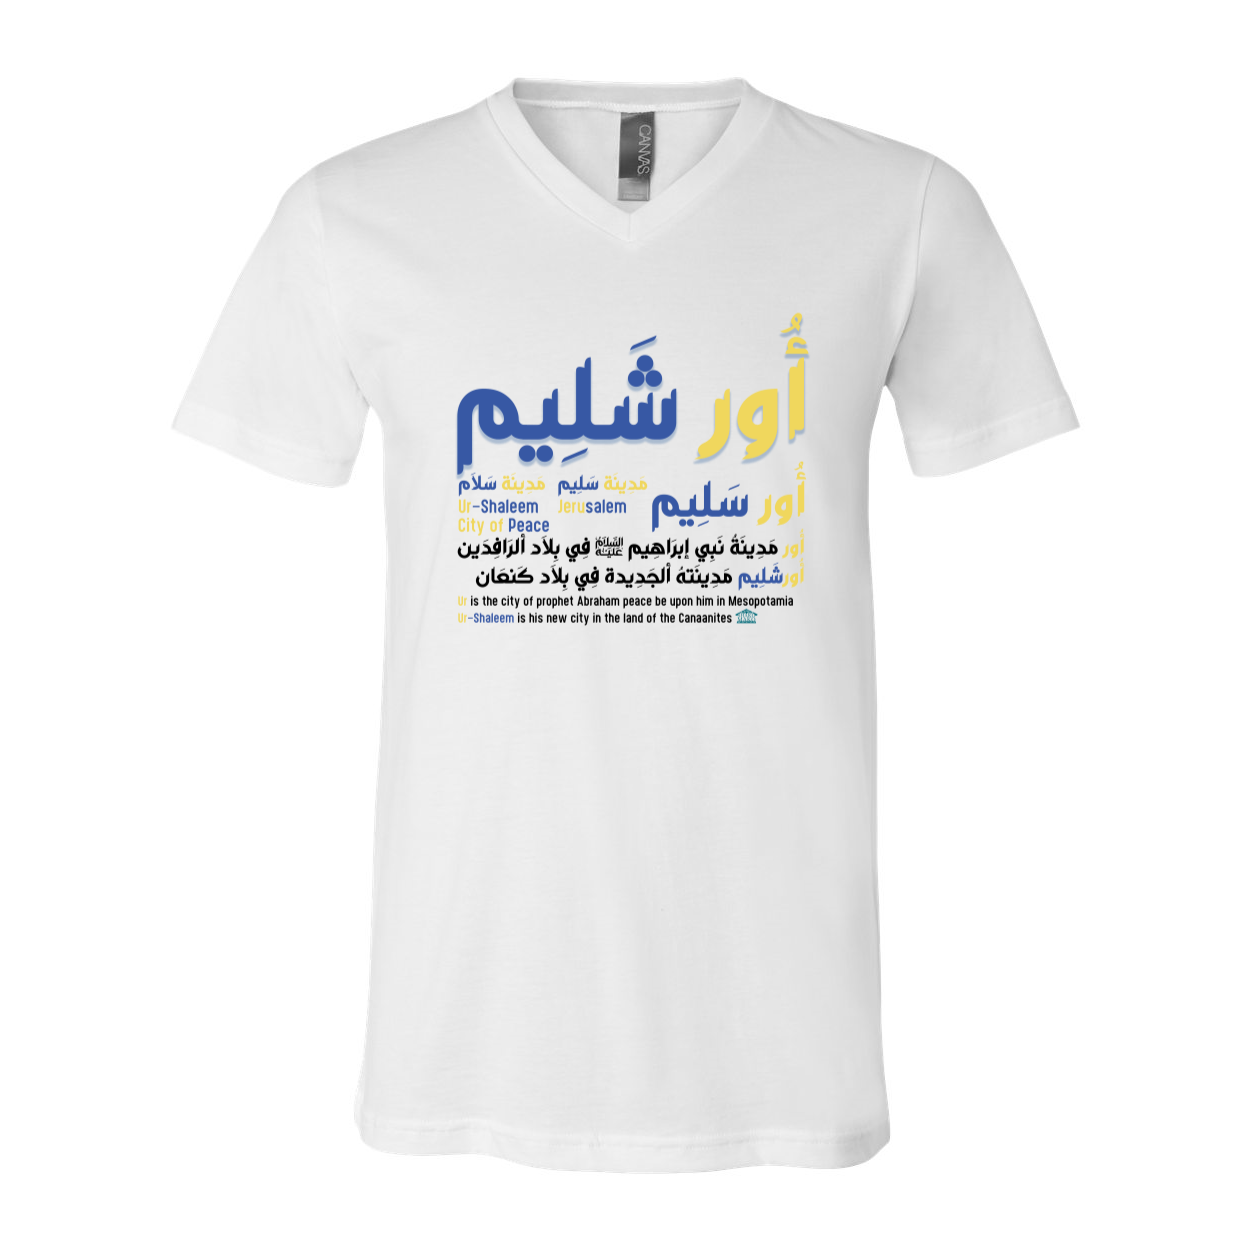 Urshaleem - Jerusalem unisex short sleeve v neck